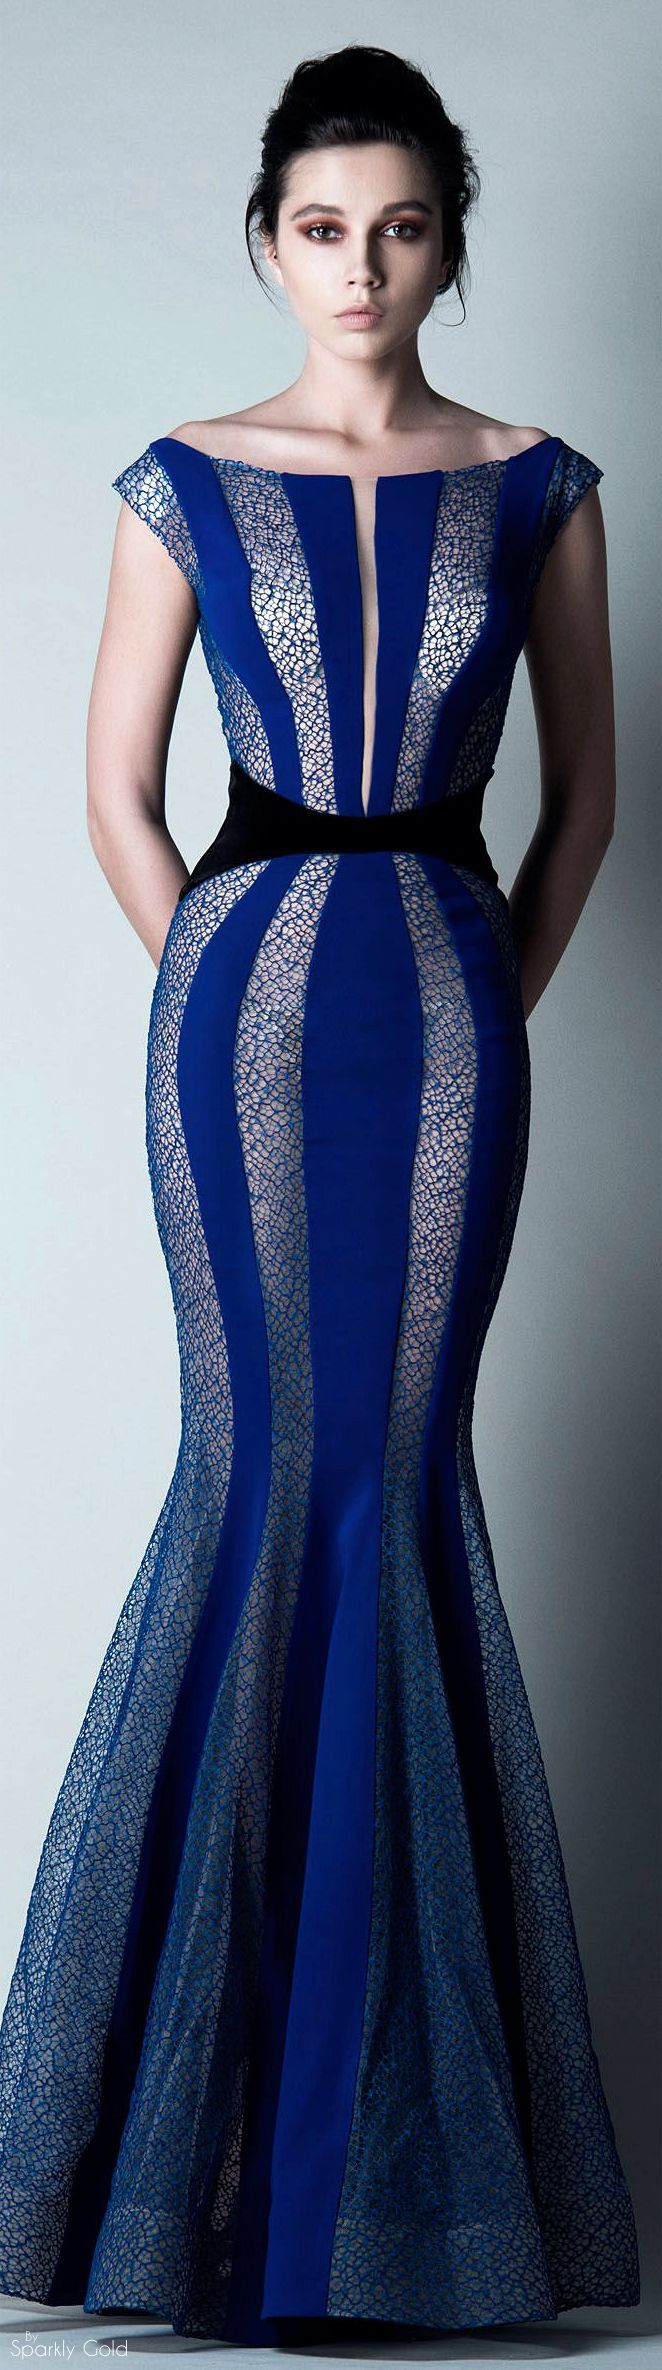 "Saiid Kobeisy Fall 2015 RTW...turn this from a ""mermaid"" style to a chic pencil dress and this is a winner"